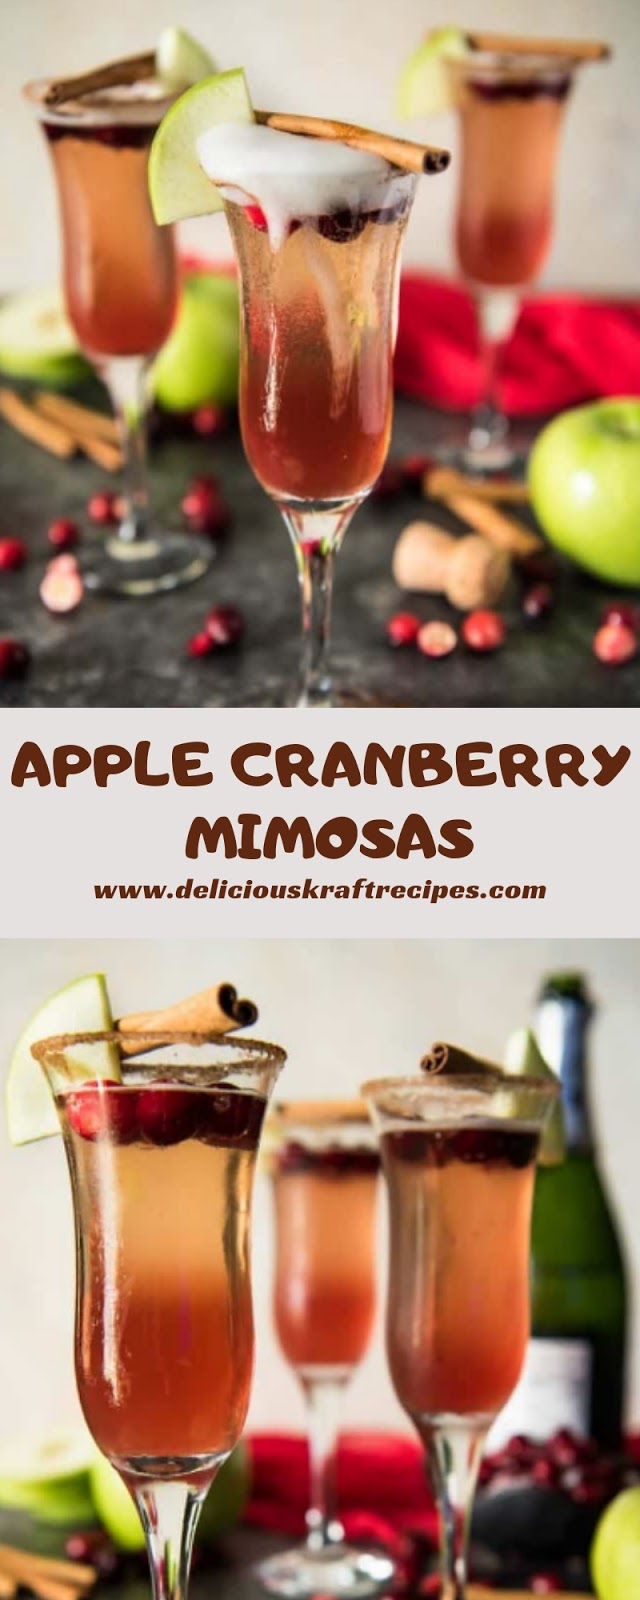 APPLE CRANBERRY MIMOSAS